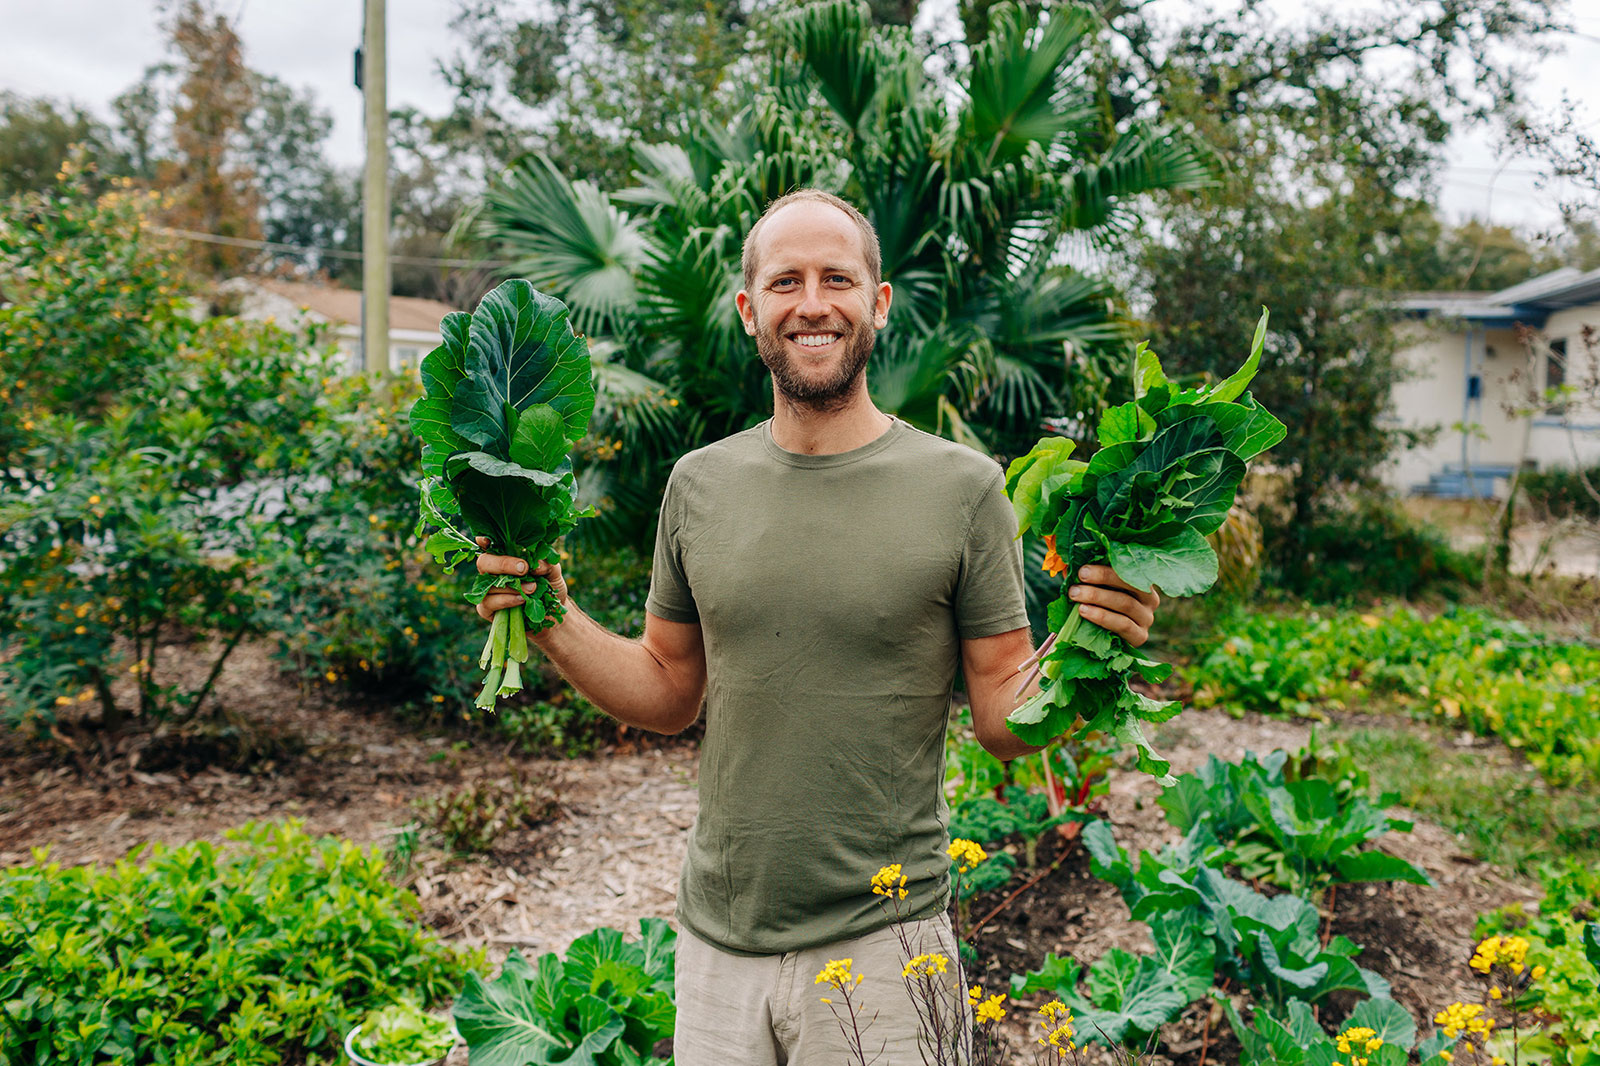 This Guy Is Growing All of His Food…on Other People's Land